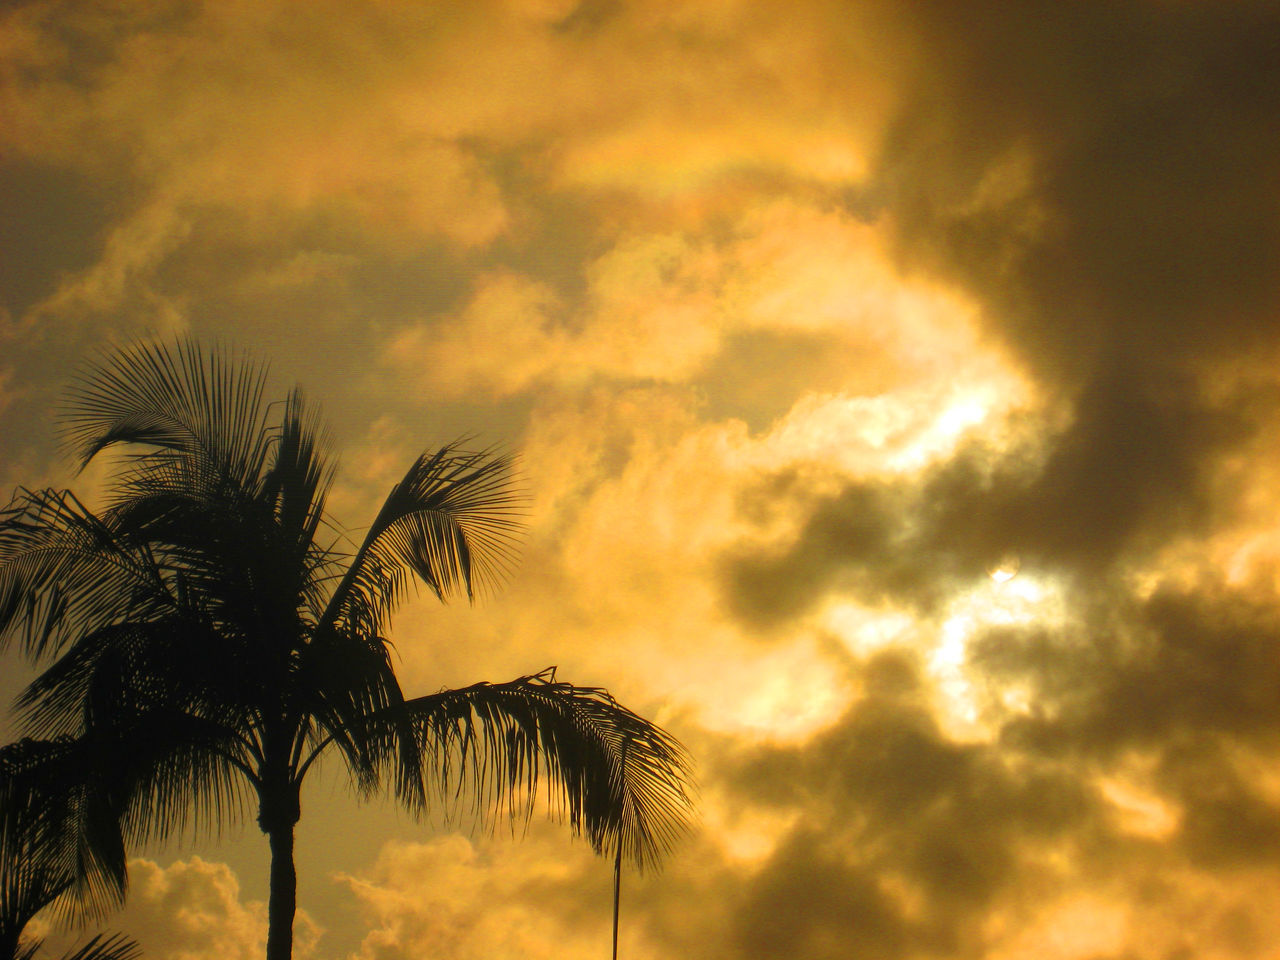 Low Angle View Of Silhouette Palm Trees Against Sunset Sky